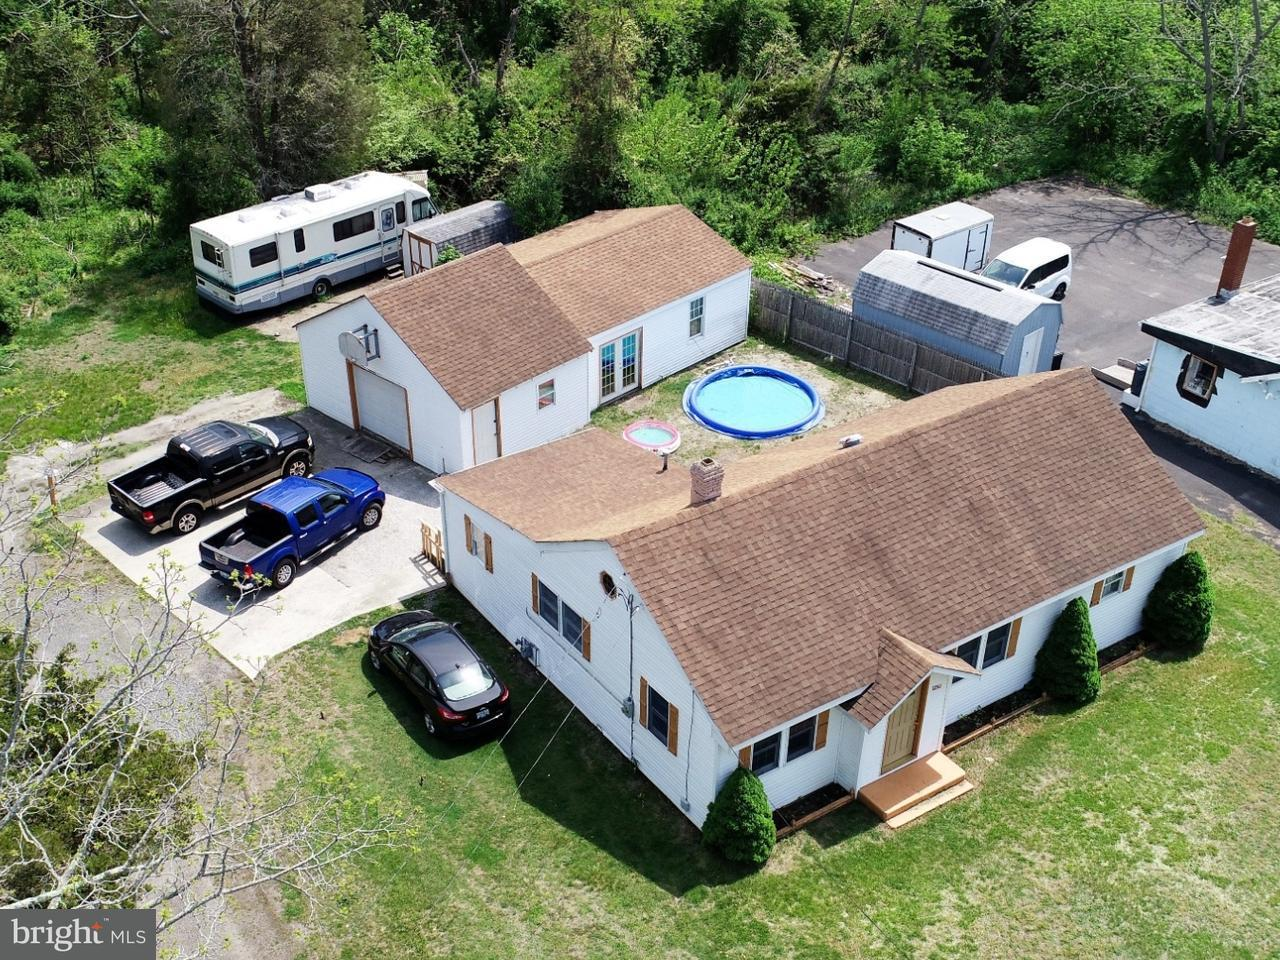 Single Family Home for Sale at 1230 ROUTE 9 S Cape May Court House, New Jersey 08210 United States